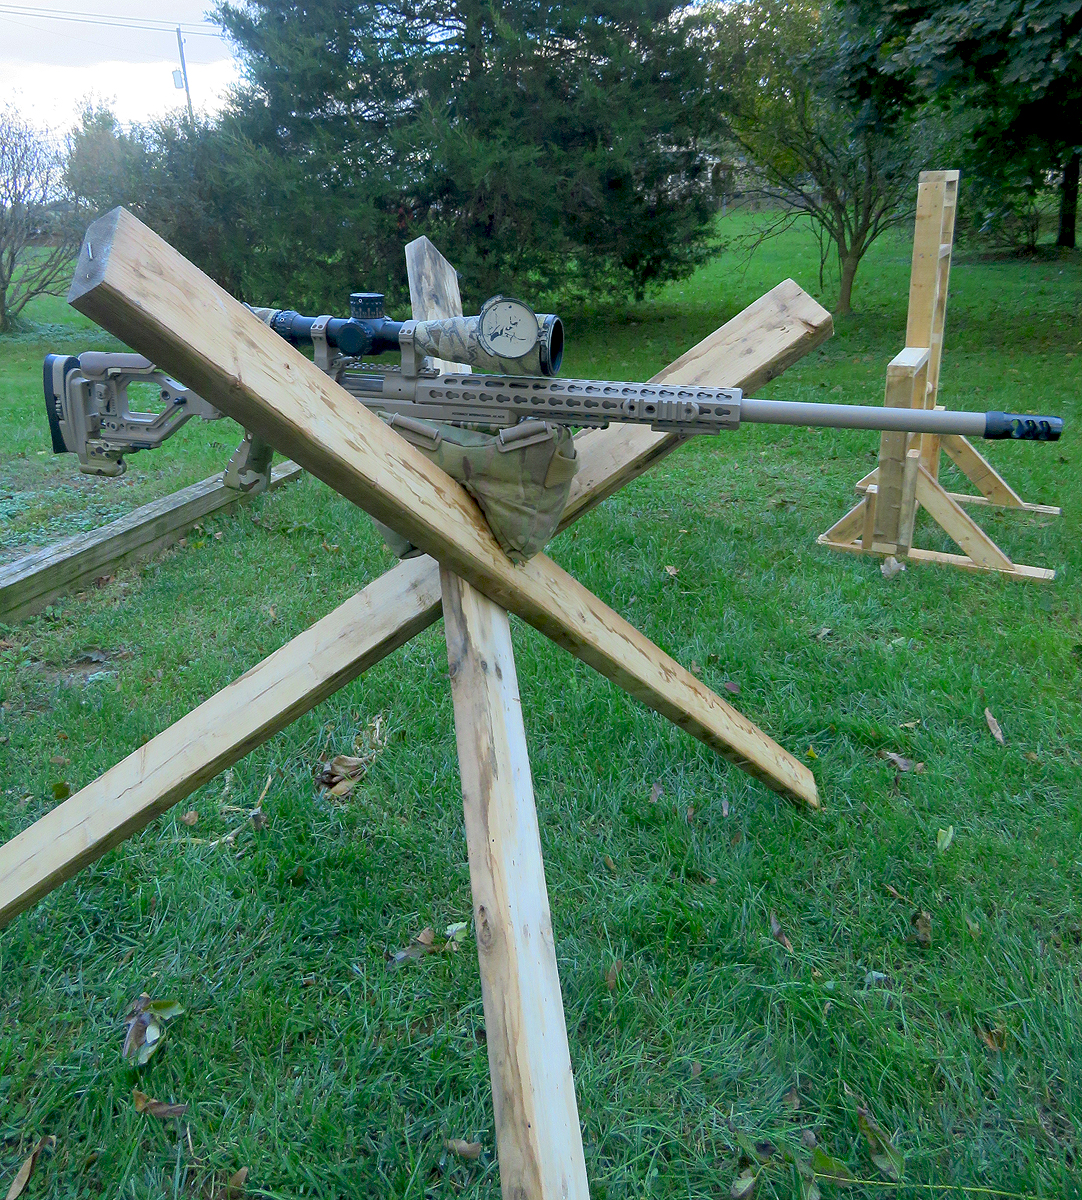 Building Barricades For Long Range Rifle Practice